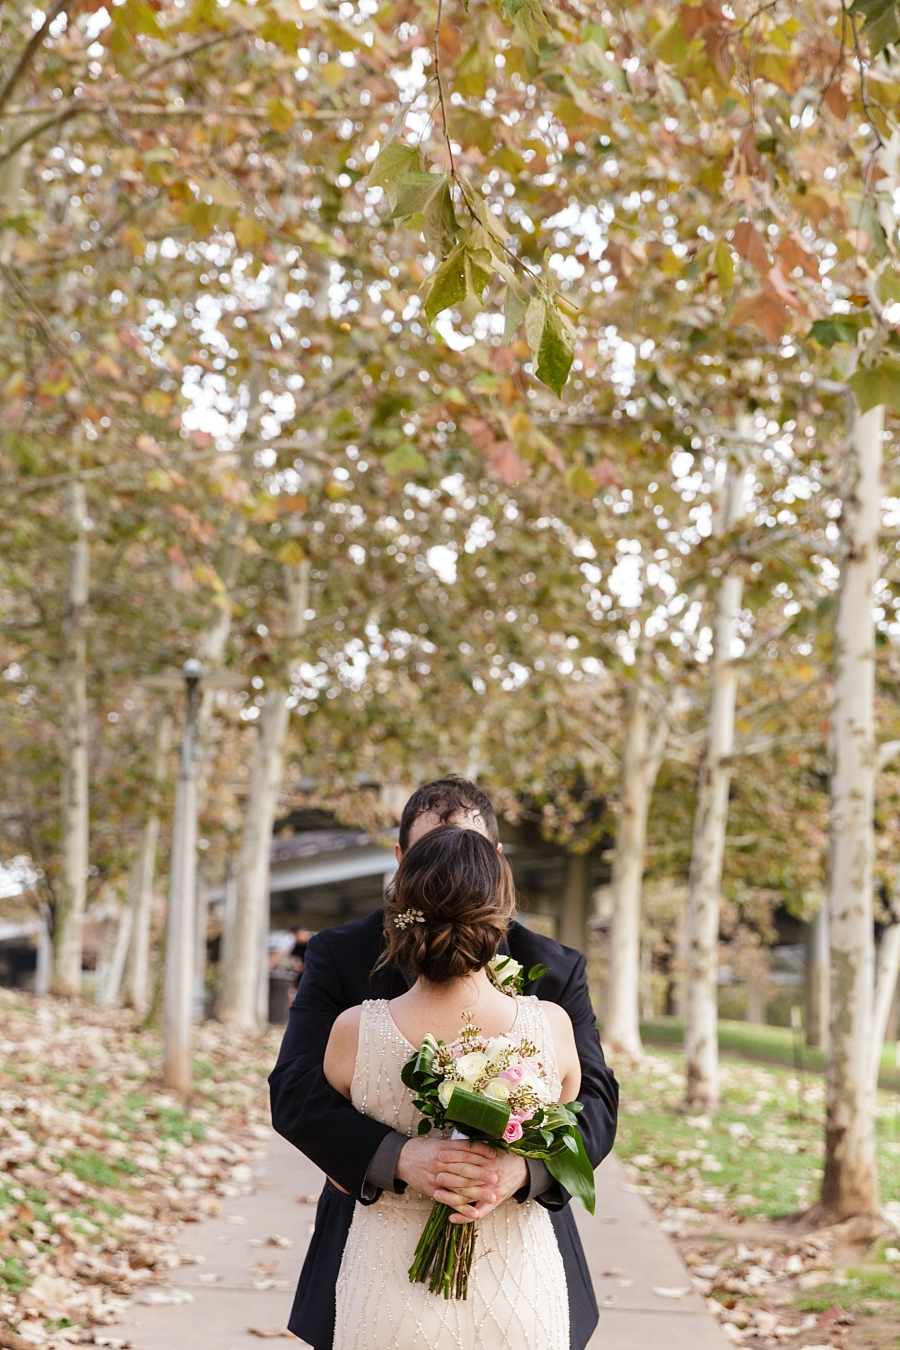 Stacy-Anderson-Photography-Houston-Courthouse-Vic-Anthony-Wedding-Photographer_0014.jpg